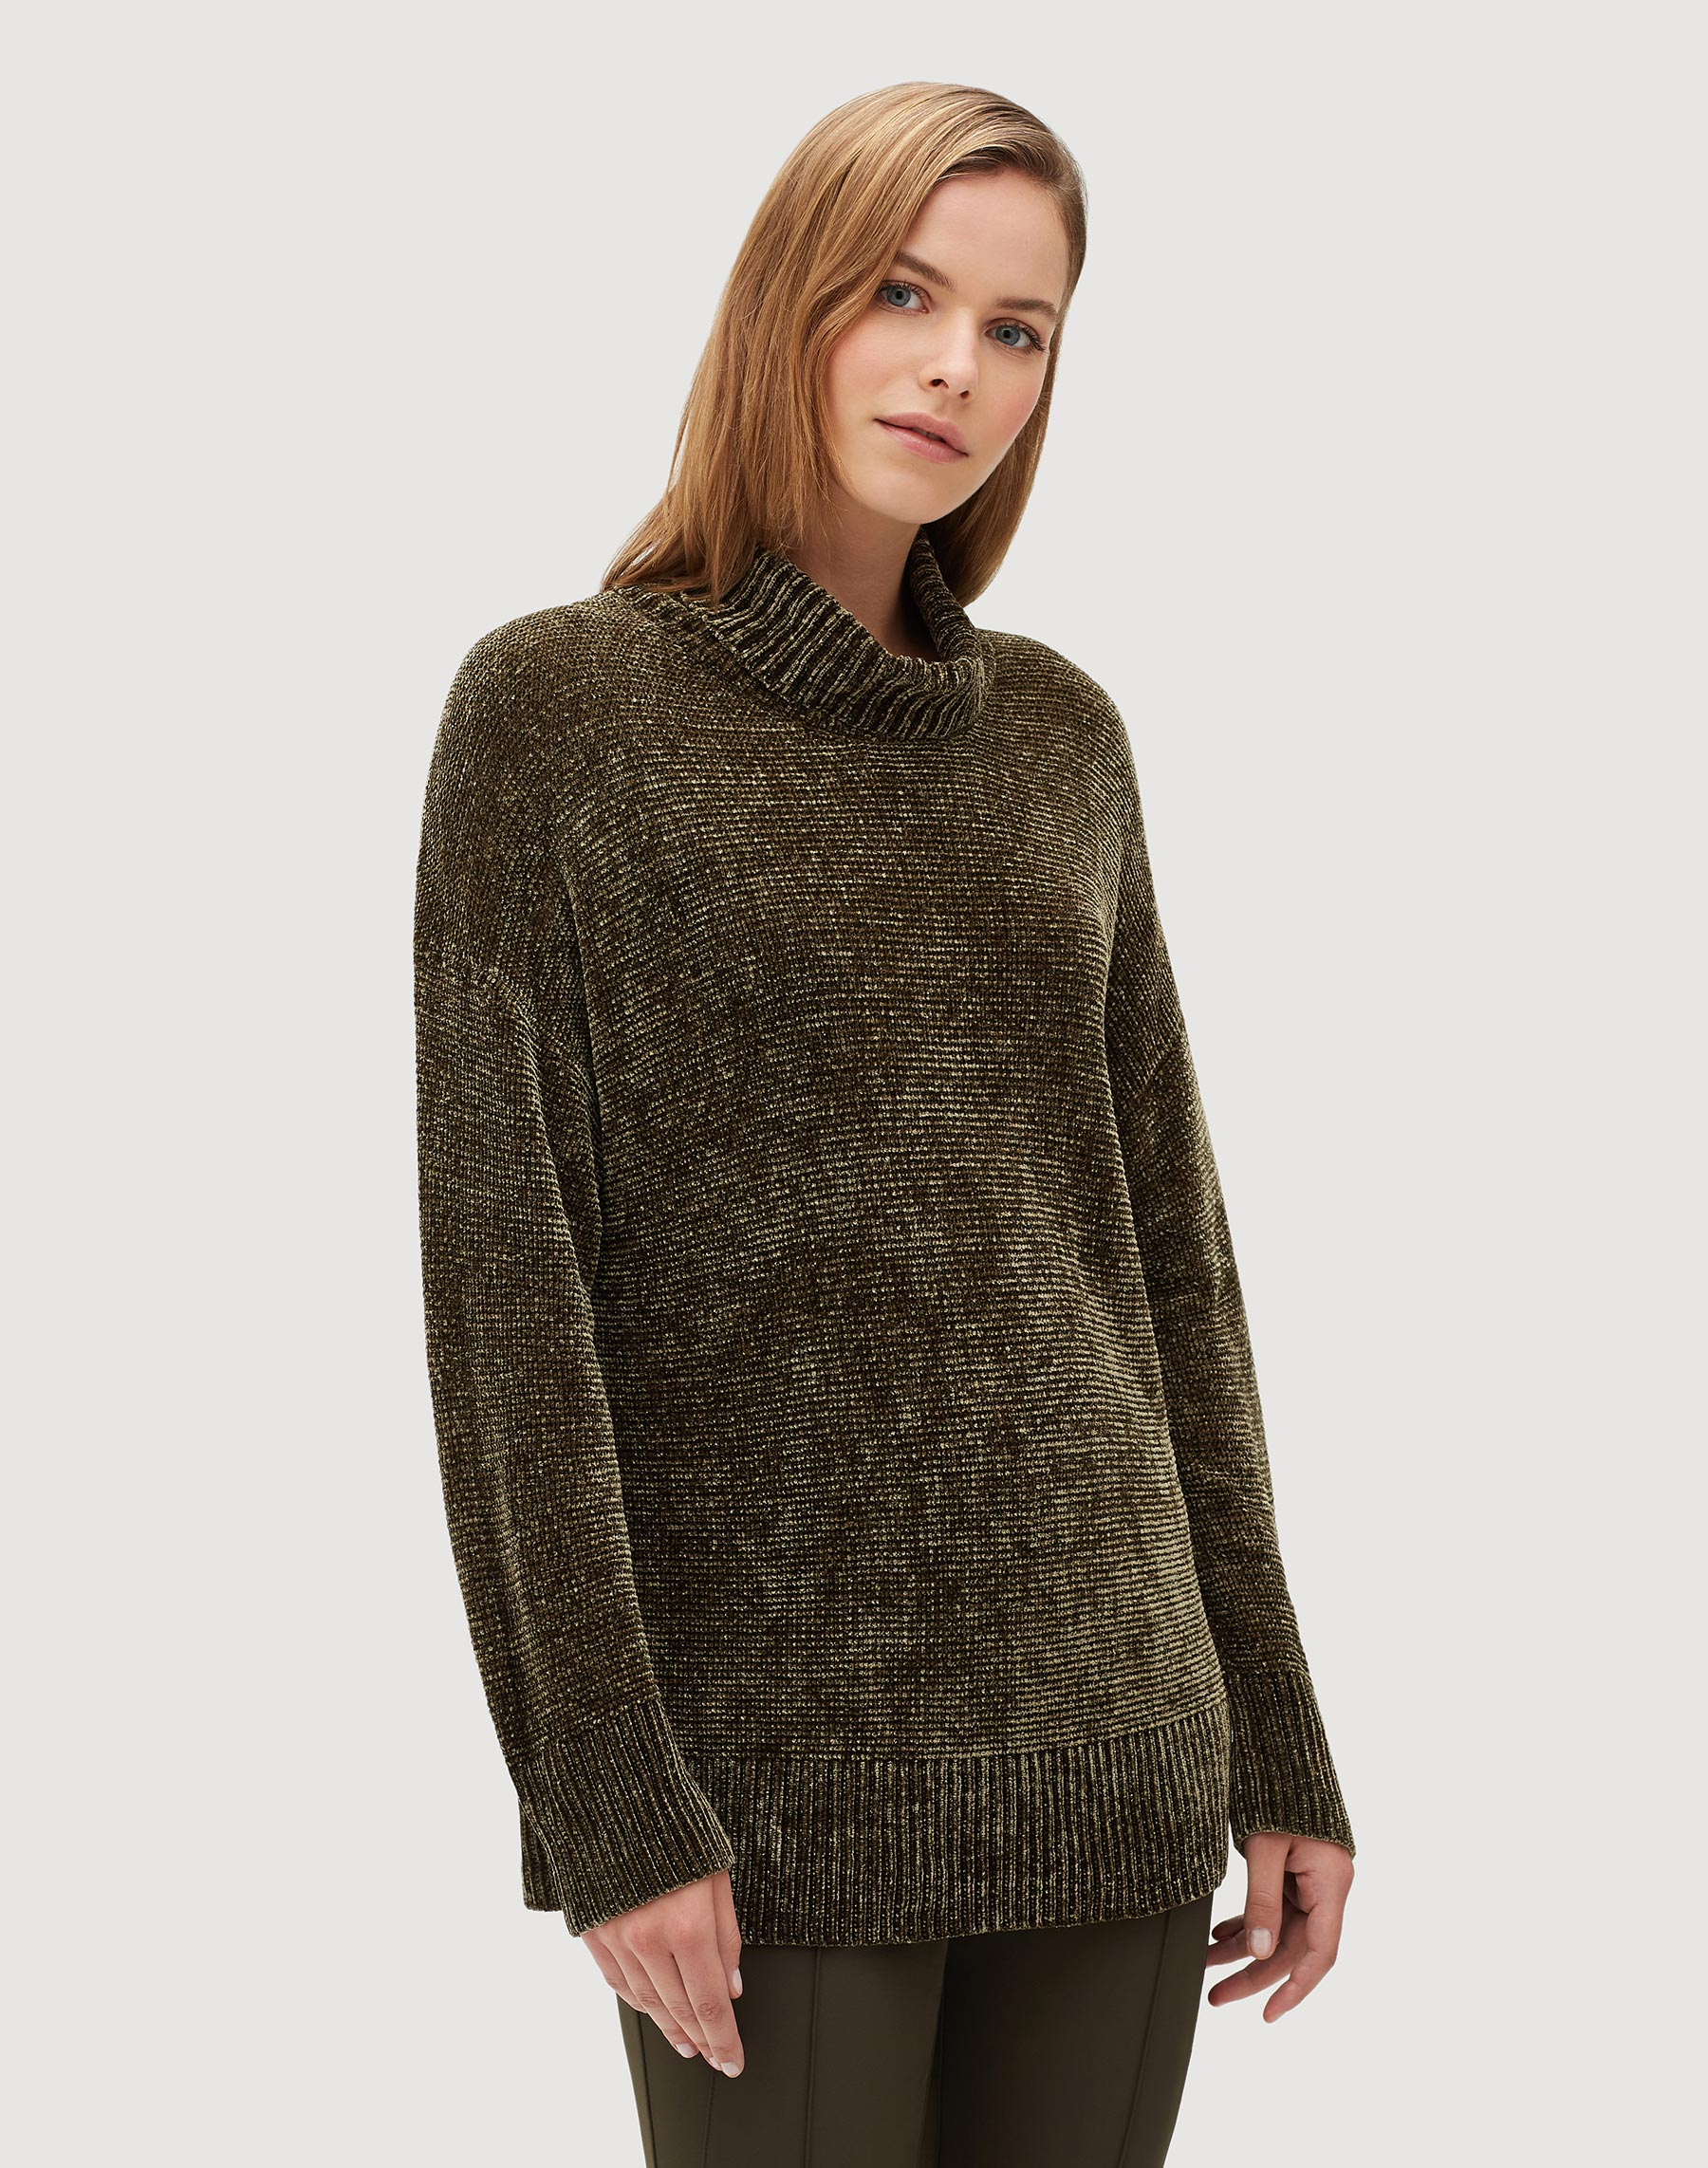 Plus Size Polished Chenille Turtleneck Sweater Lafayette 148 New York